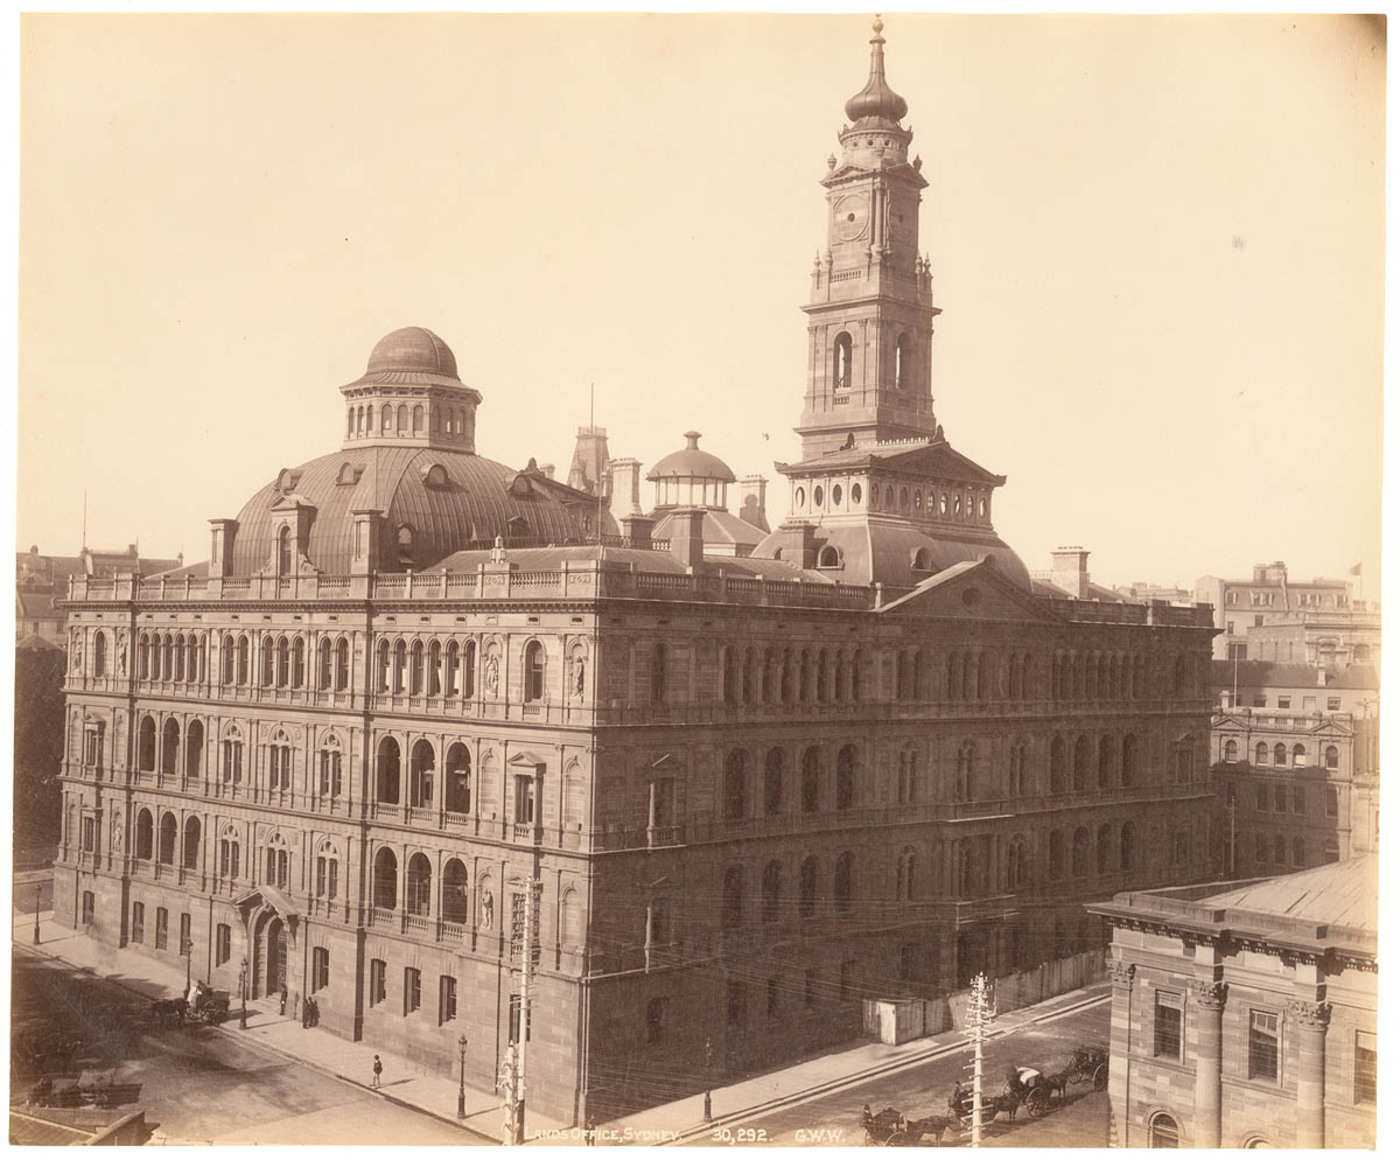 Lands Office, Sydney, from Fred Hardie - Photographs of Sydney, Newcastle, New South Wales and Aboriginals for George Washington Wilson & Co., 1892-1893